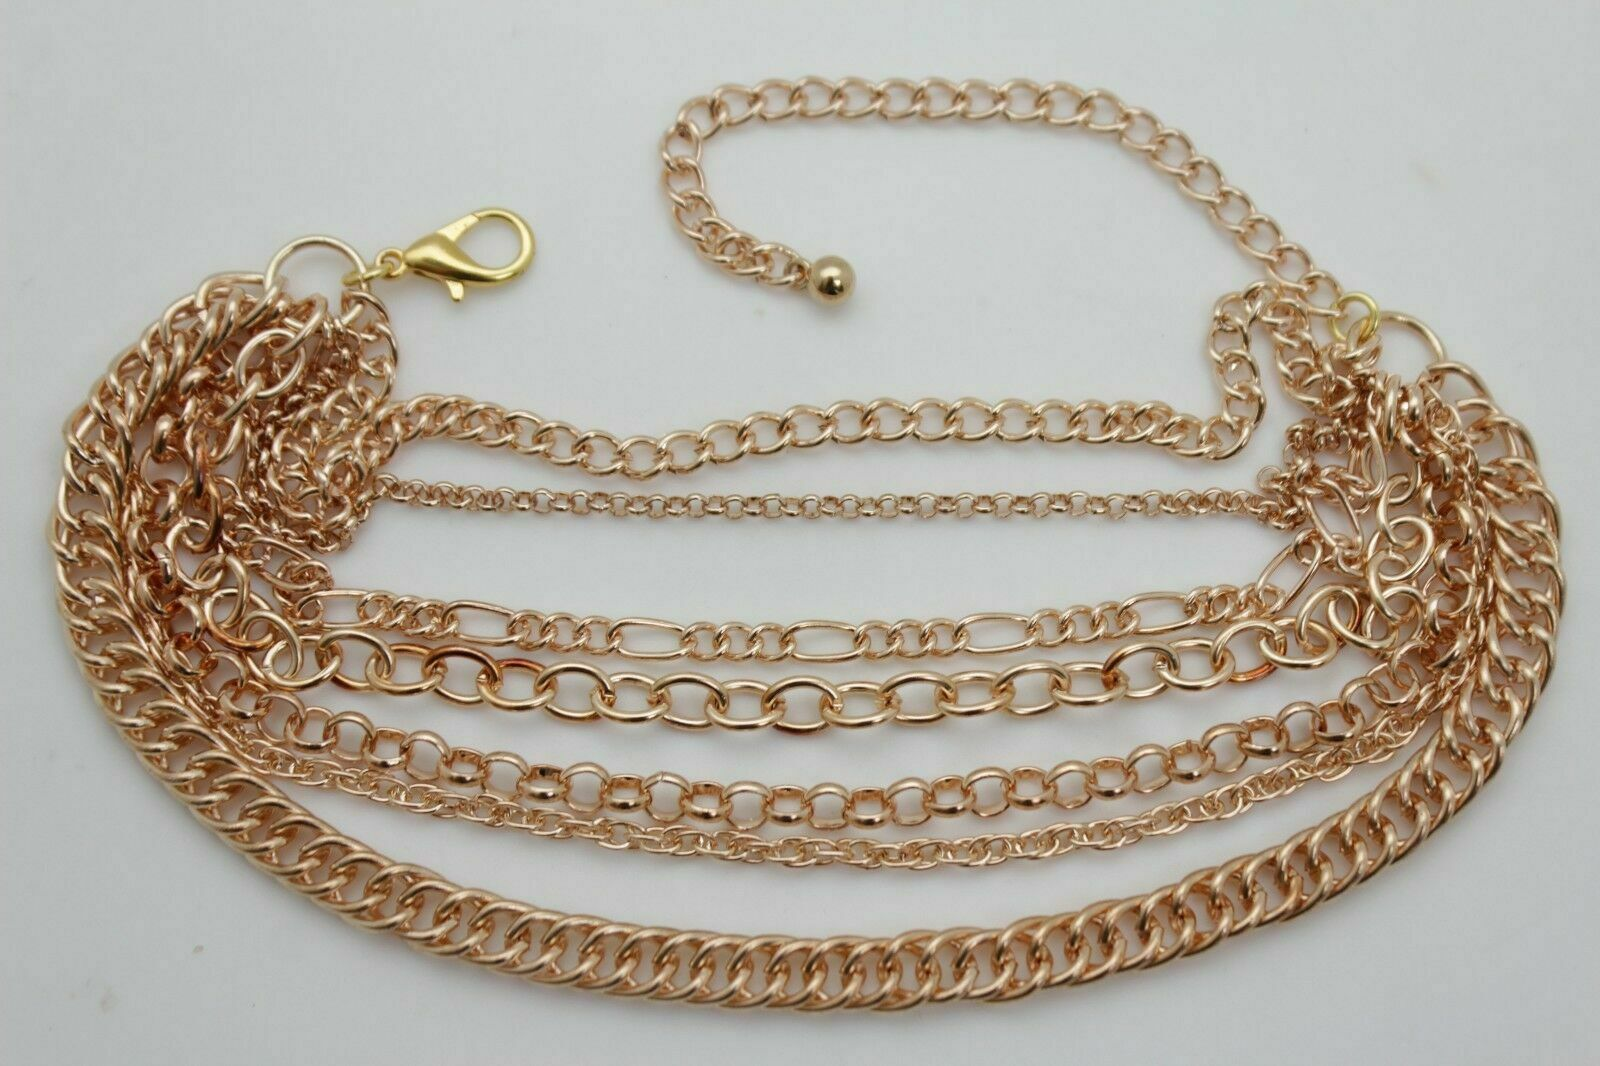 Women Gold Chain Boot Bracelet Anklet Shoe Wave 6 Strands Charm Bling Jewelry